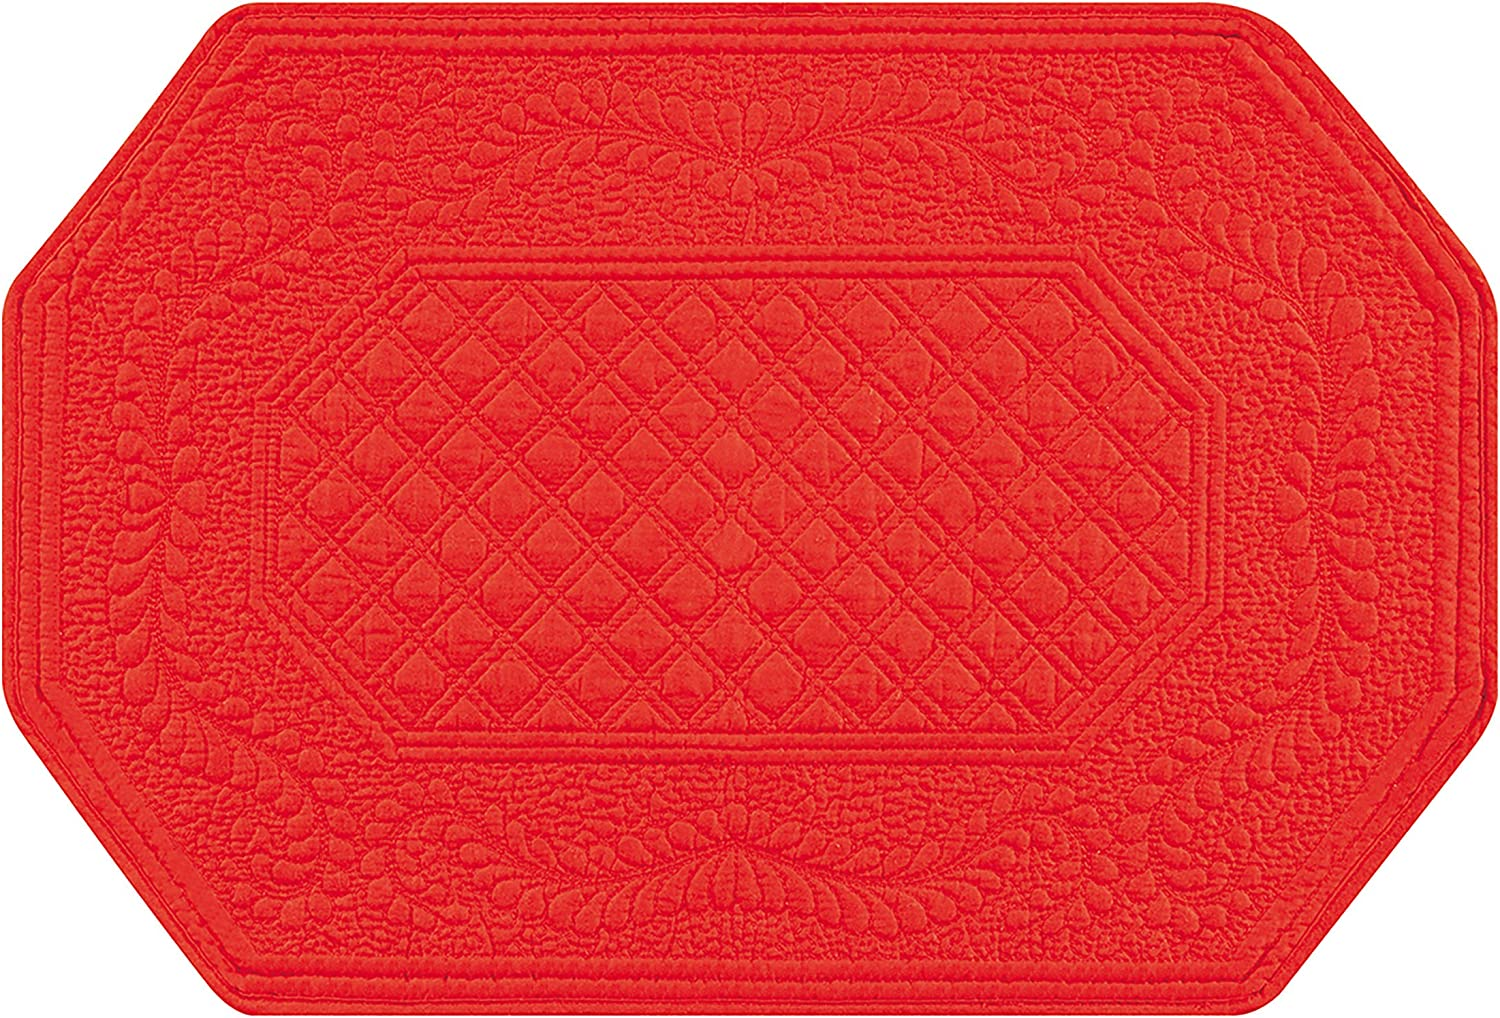 C&F Home Red Octagonal Patriotic 4th of July Memorial Day Labor Day Americana Liberty Decor Decoration Cotton Placemat Set of 4 Rectangular Placemat Red